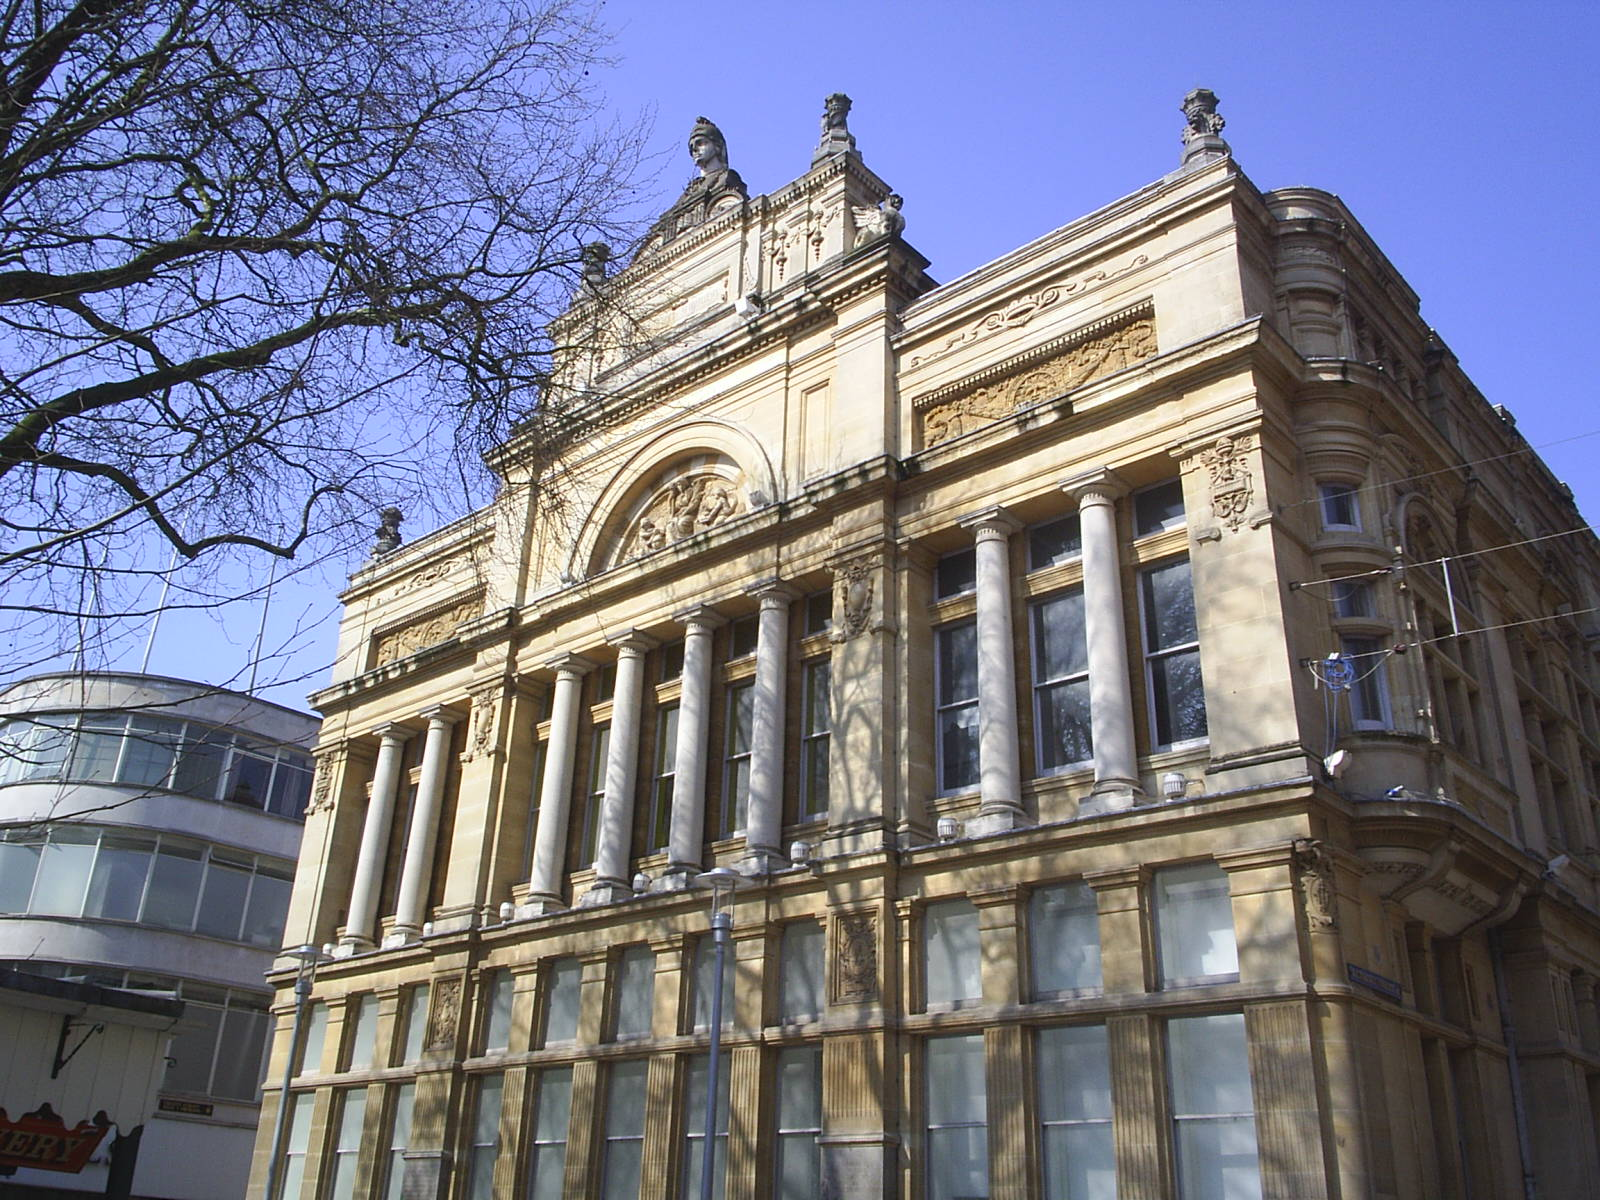 The south face of Cardiff's Old Library